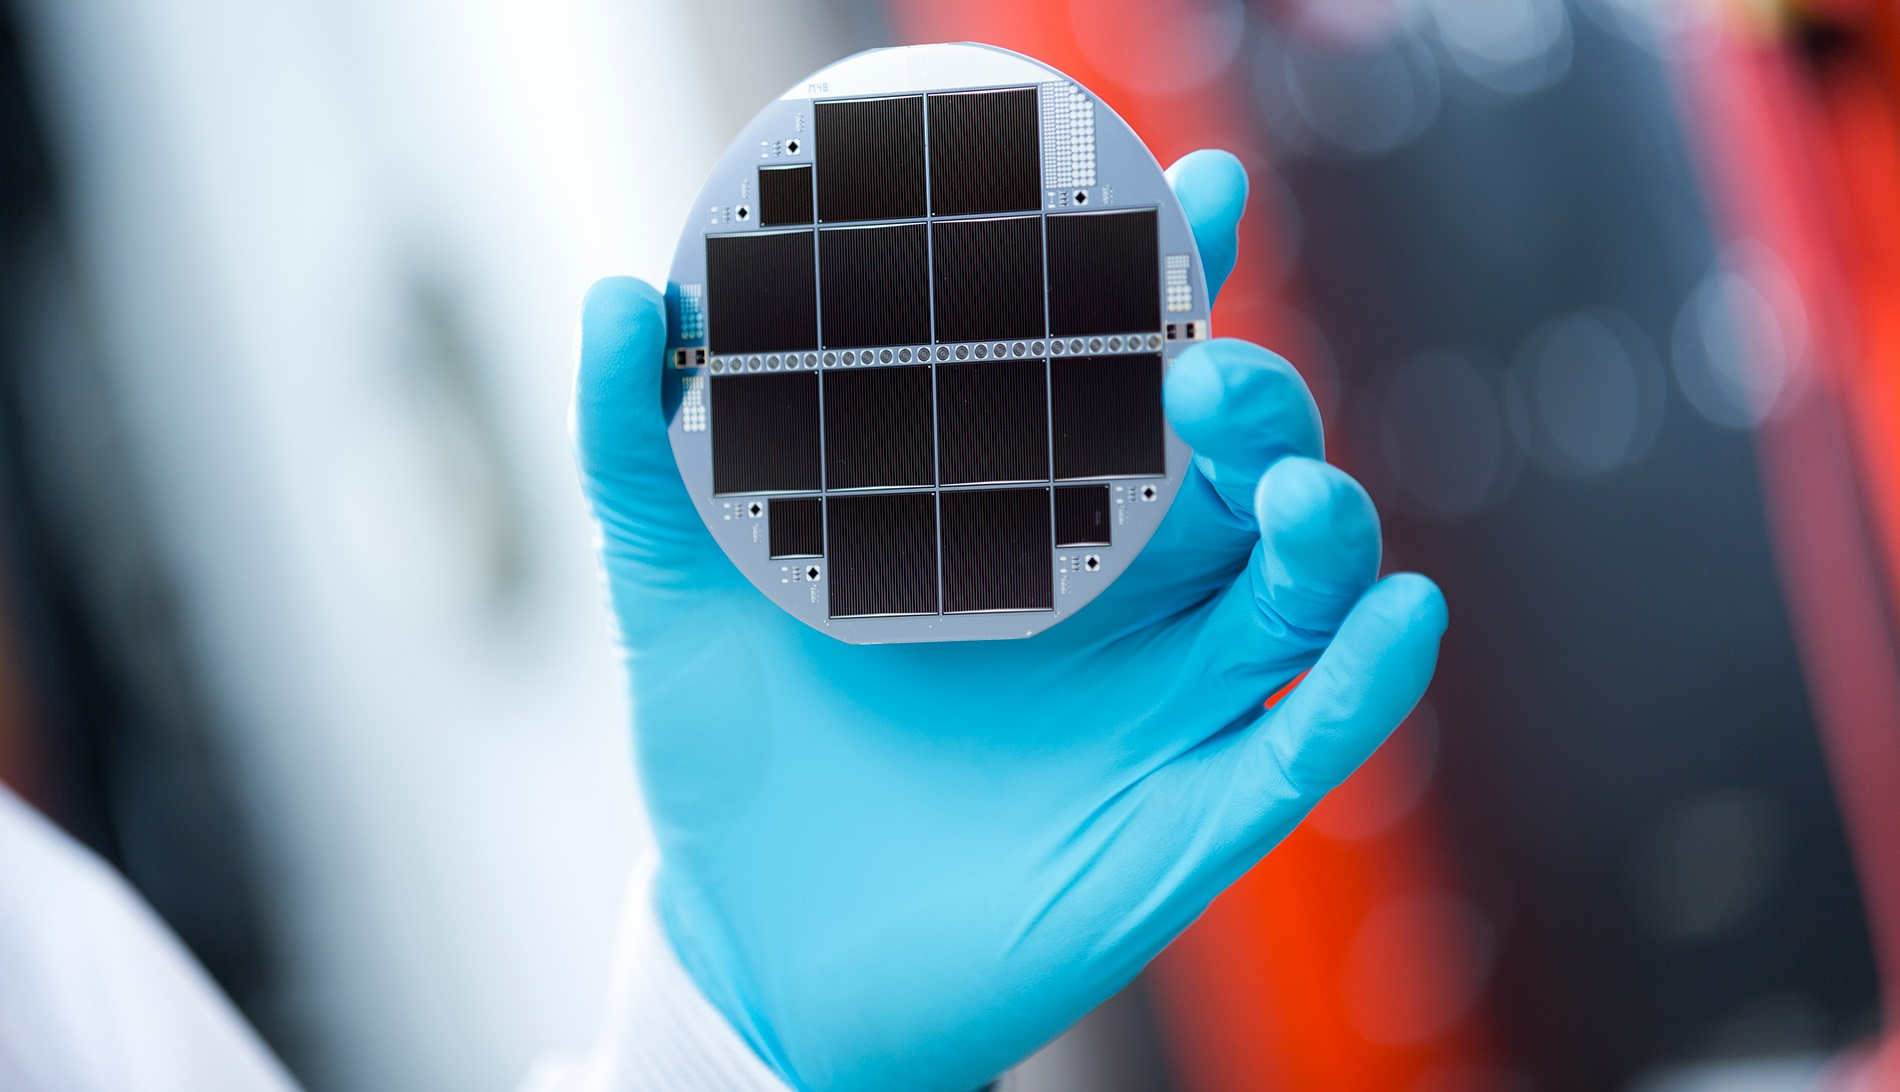 Silicon-based multi-junction solar cell consisting of III-V semiconductors and silicon